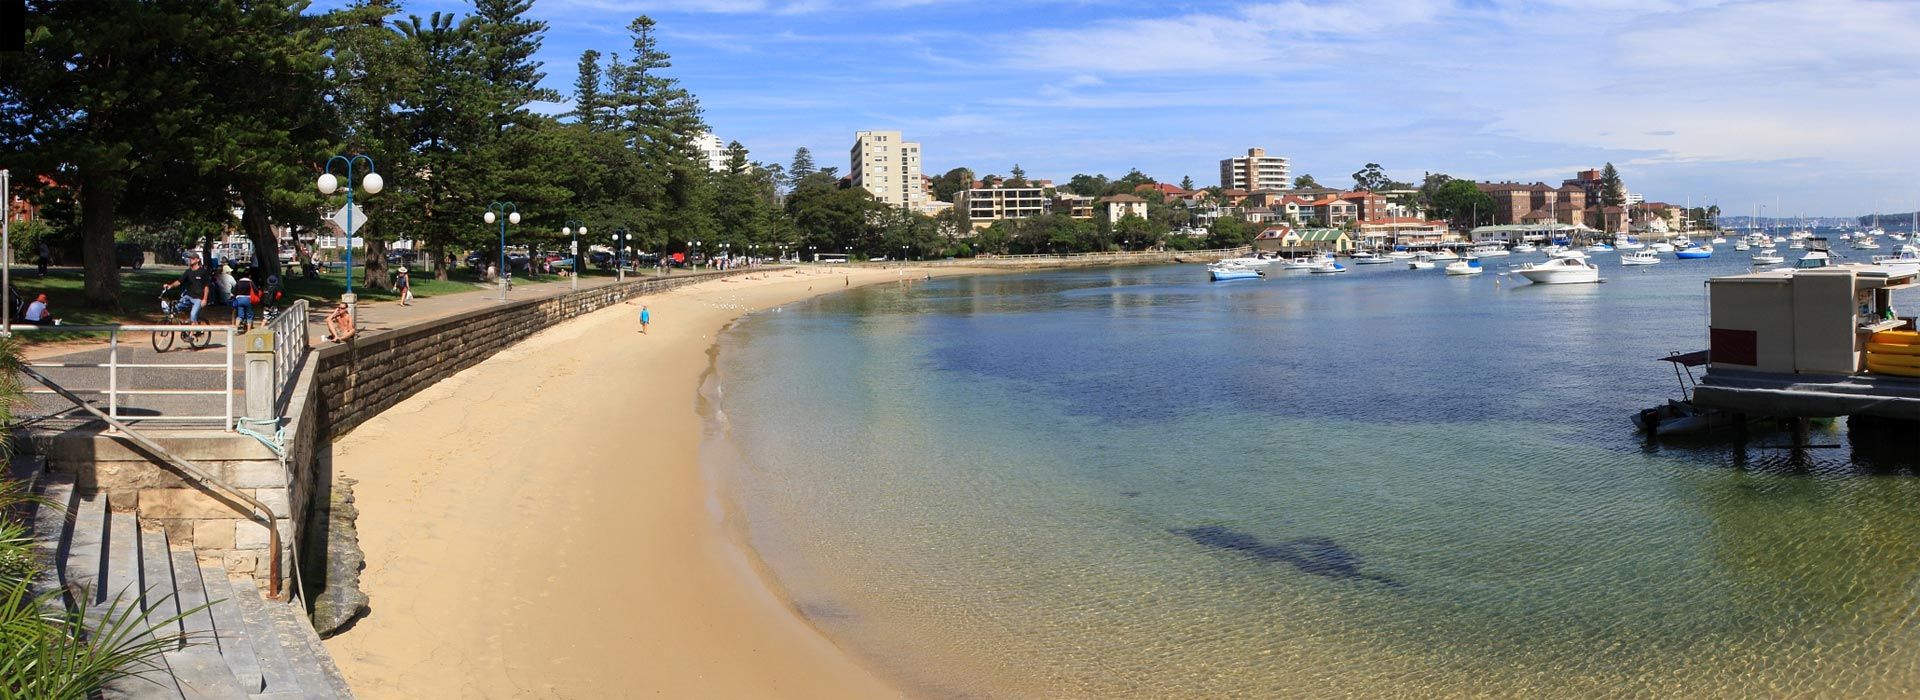 Playa de Manly en Sidney